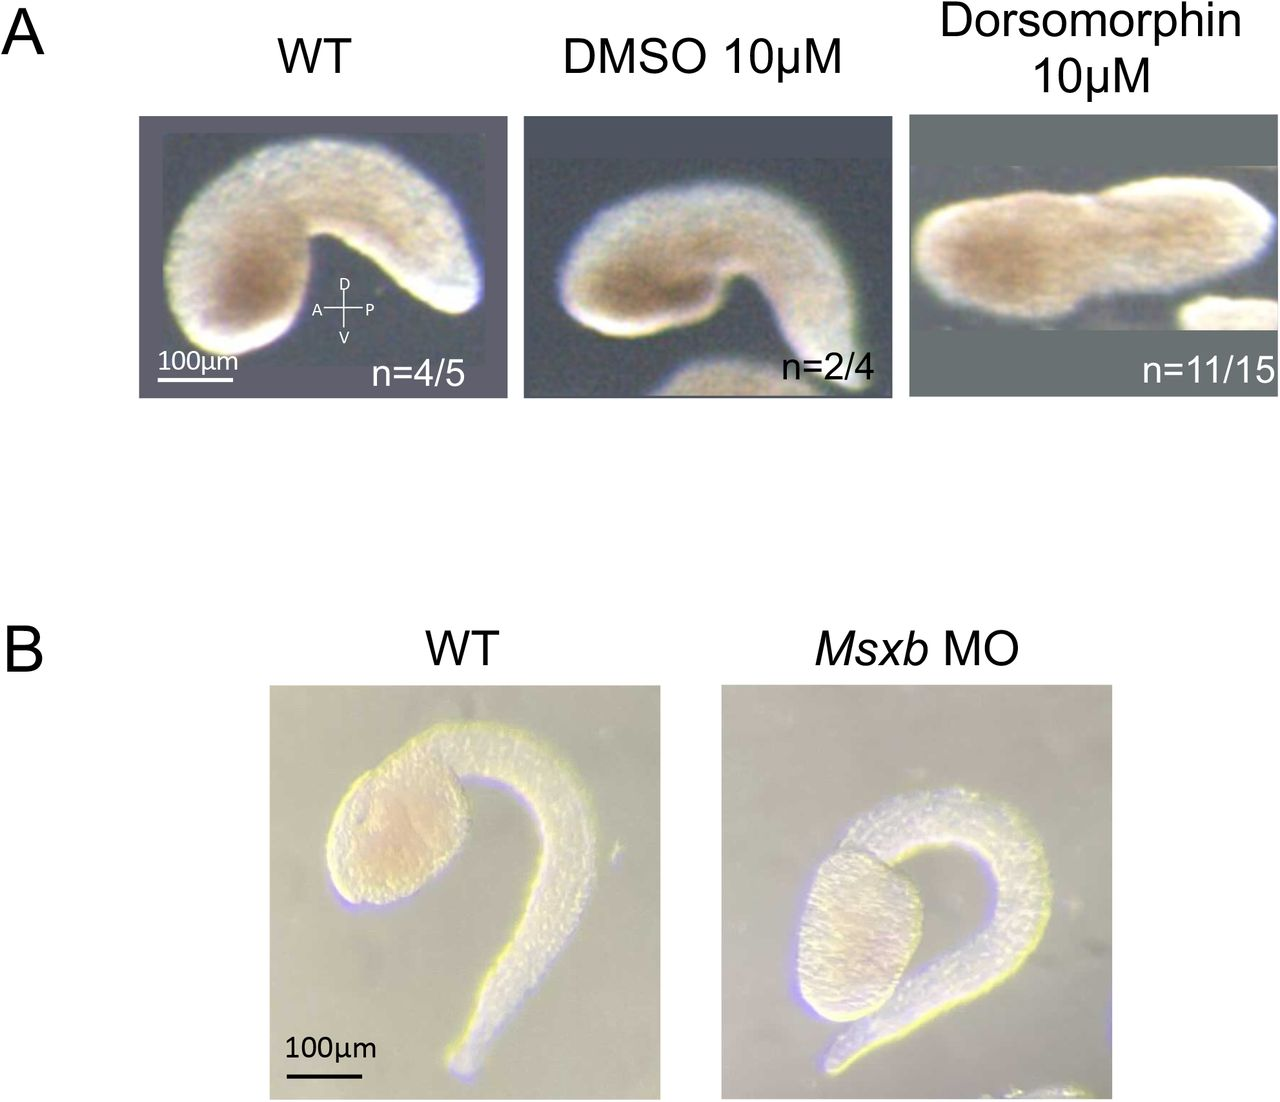 Morphants of tail bending. (A) mid-tailbud stage embryo of WT, DMSO treatment, and Dorsomorphin. DMSO and Dorsomorphin were treated after the mid neurula stage (st. 15). The dorsomorphin-treated embryo didn't bend tail, similar to the Admp MO embryo ( Fig.1A ). (B) MOs against Msxb were injected. While Admp MO was affected the tail bending ( Fig.1A ), Msxb MO was not affected the tail bending. Scale bar, 100 μm. The number of examined embryos and the proportion of representative embryos are shown in each panel, respectively. All embryos are shown anterior to the left.